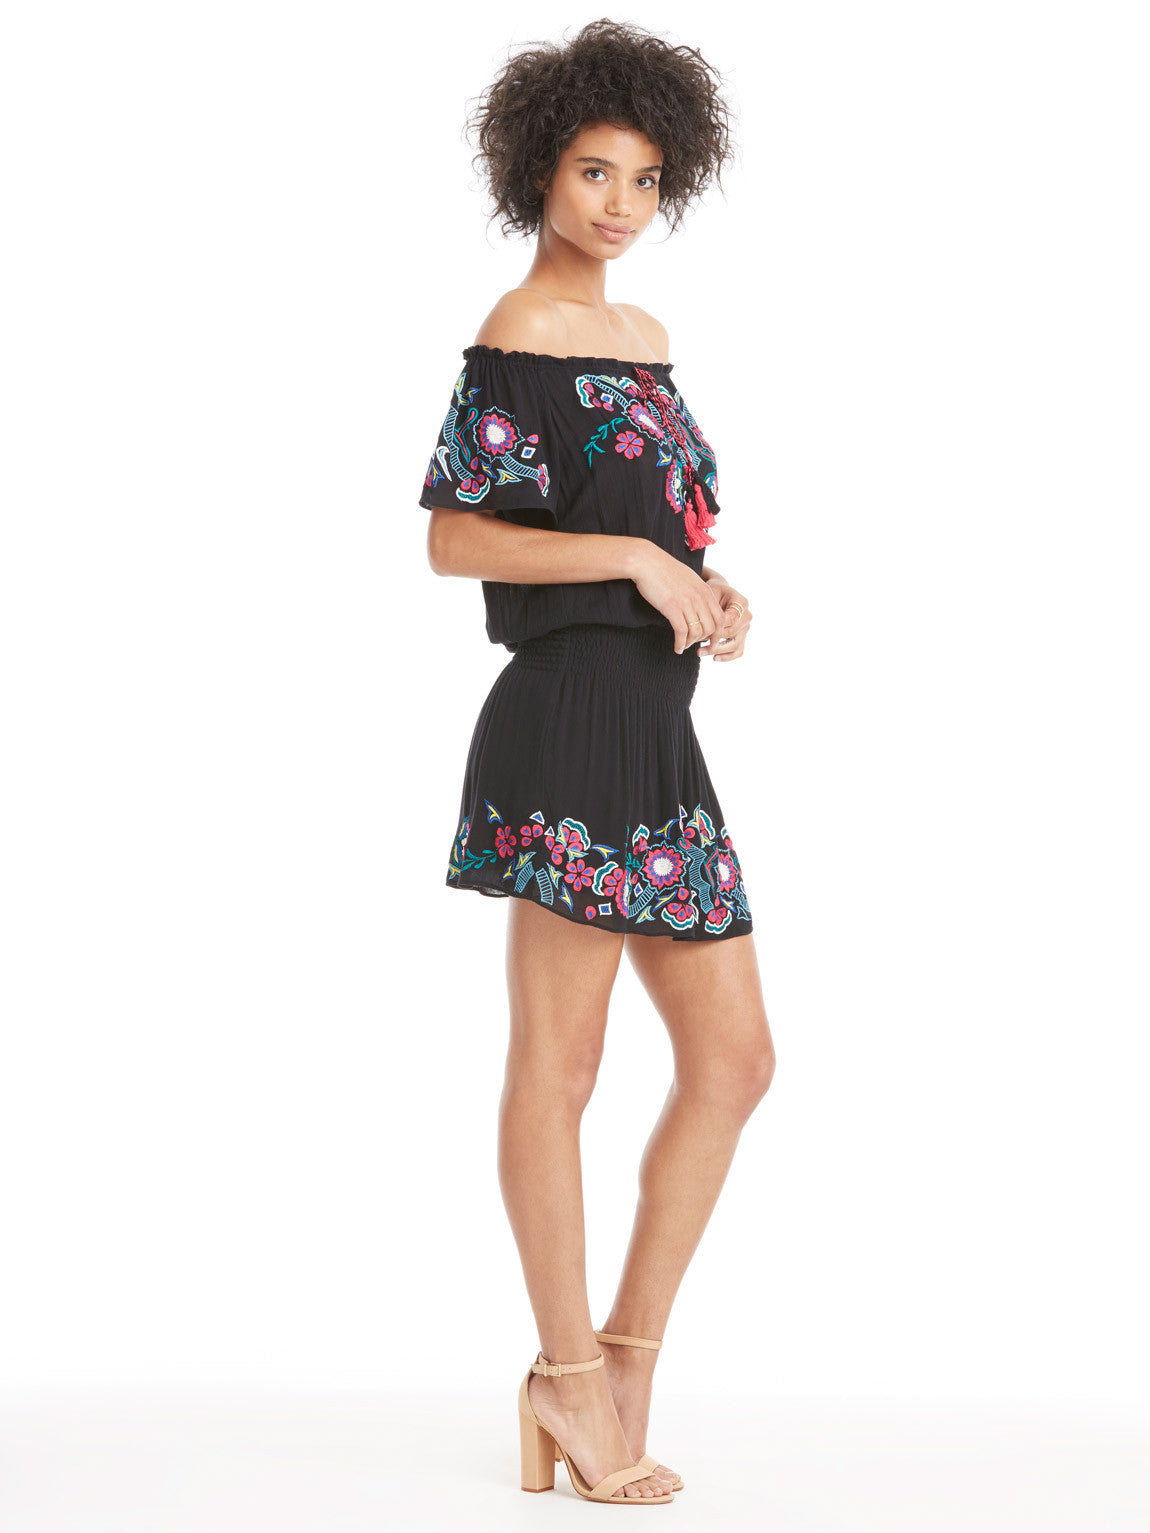 TILDEN | Parker Tammy Dress